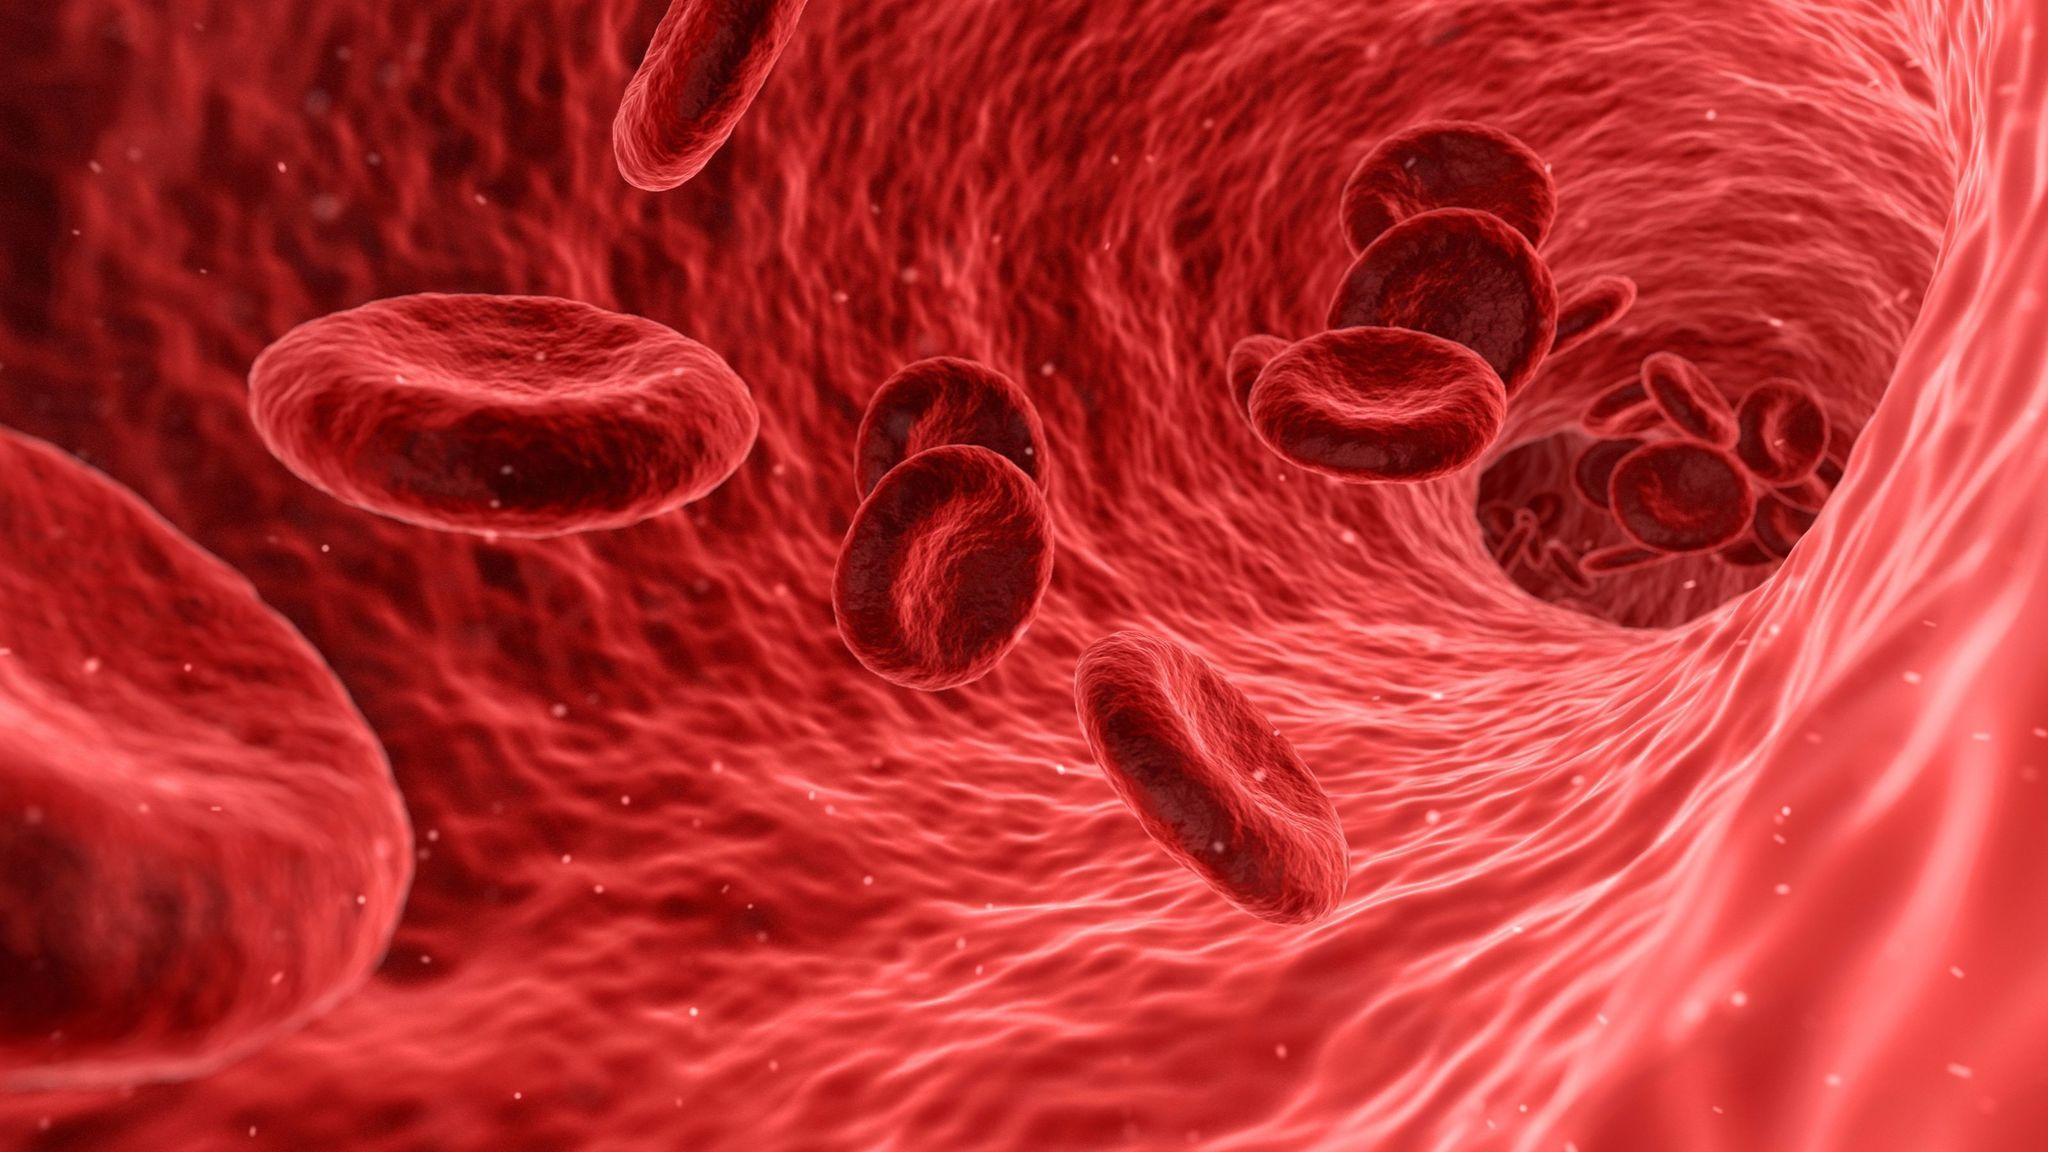 Lower risk of heart attack in those with blood type O, study finds